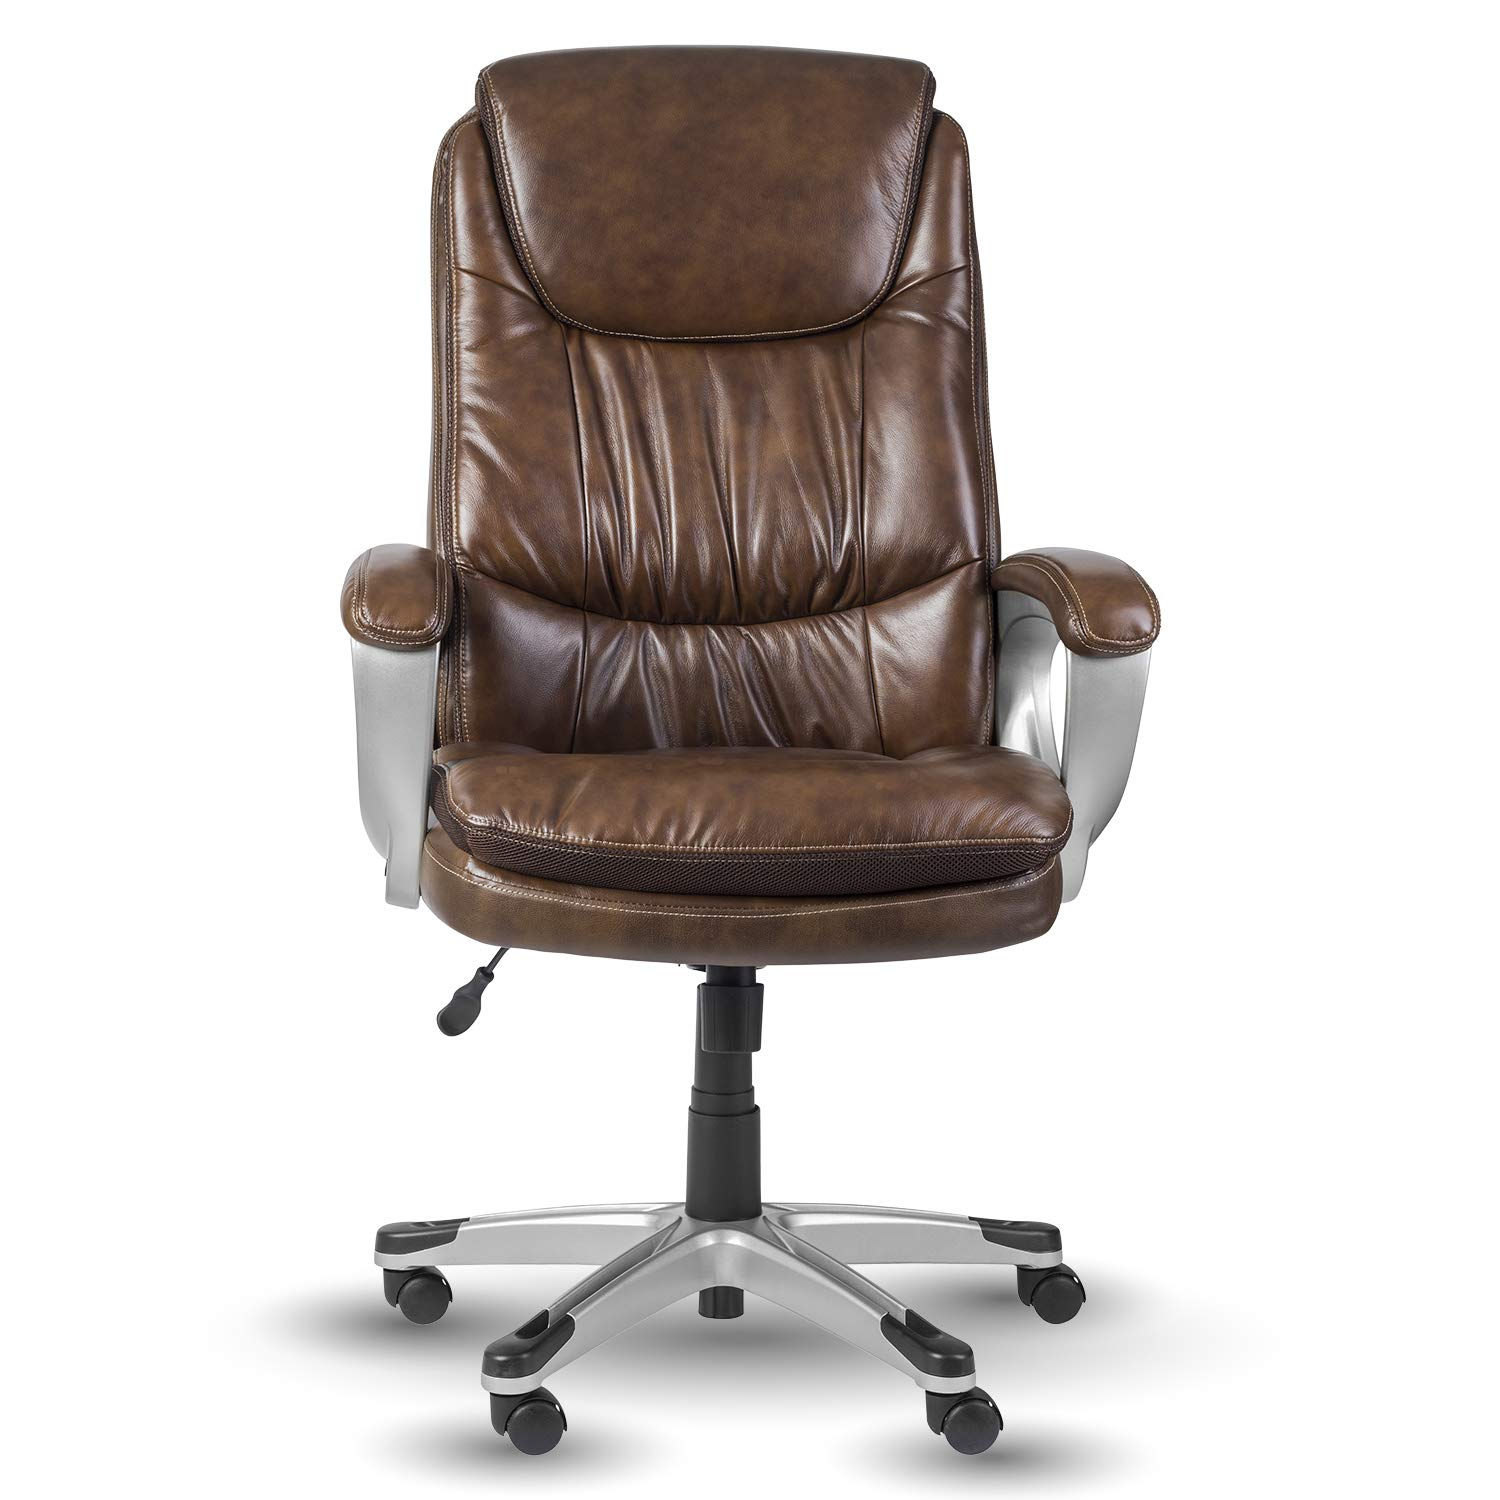 Enjoyable Halter Hal 065 Executive 100 Cow Grain Leather Office Chair Home Office Computer Desk Chair W Nylon Coated Base Arms Padded Arm Rests 28 5 X Machost Co Dining Chair Design Ideas Machostcouk